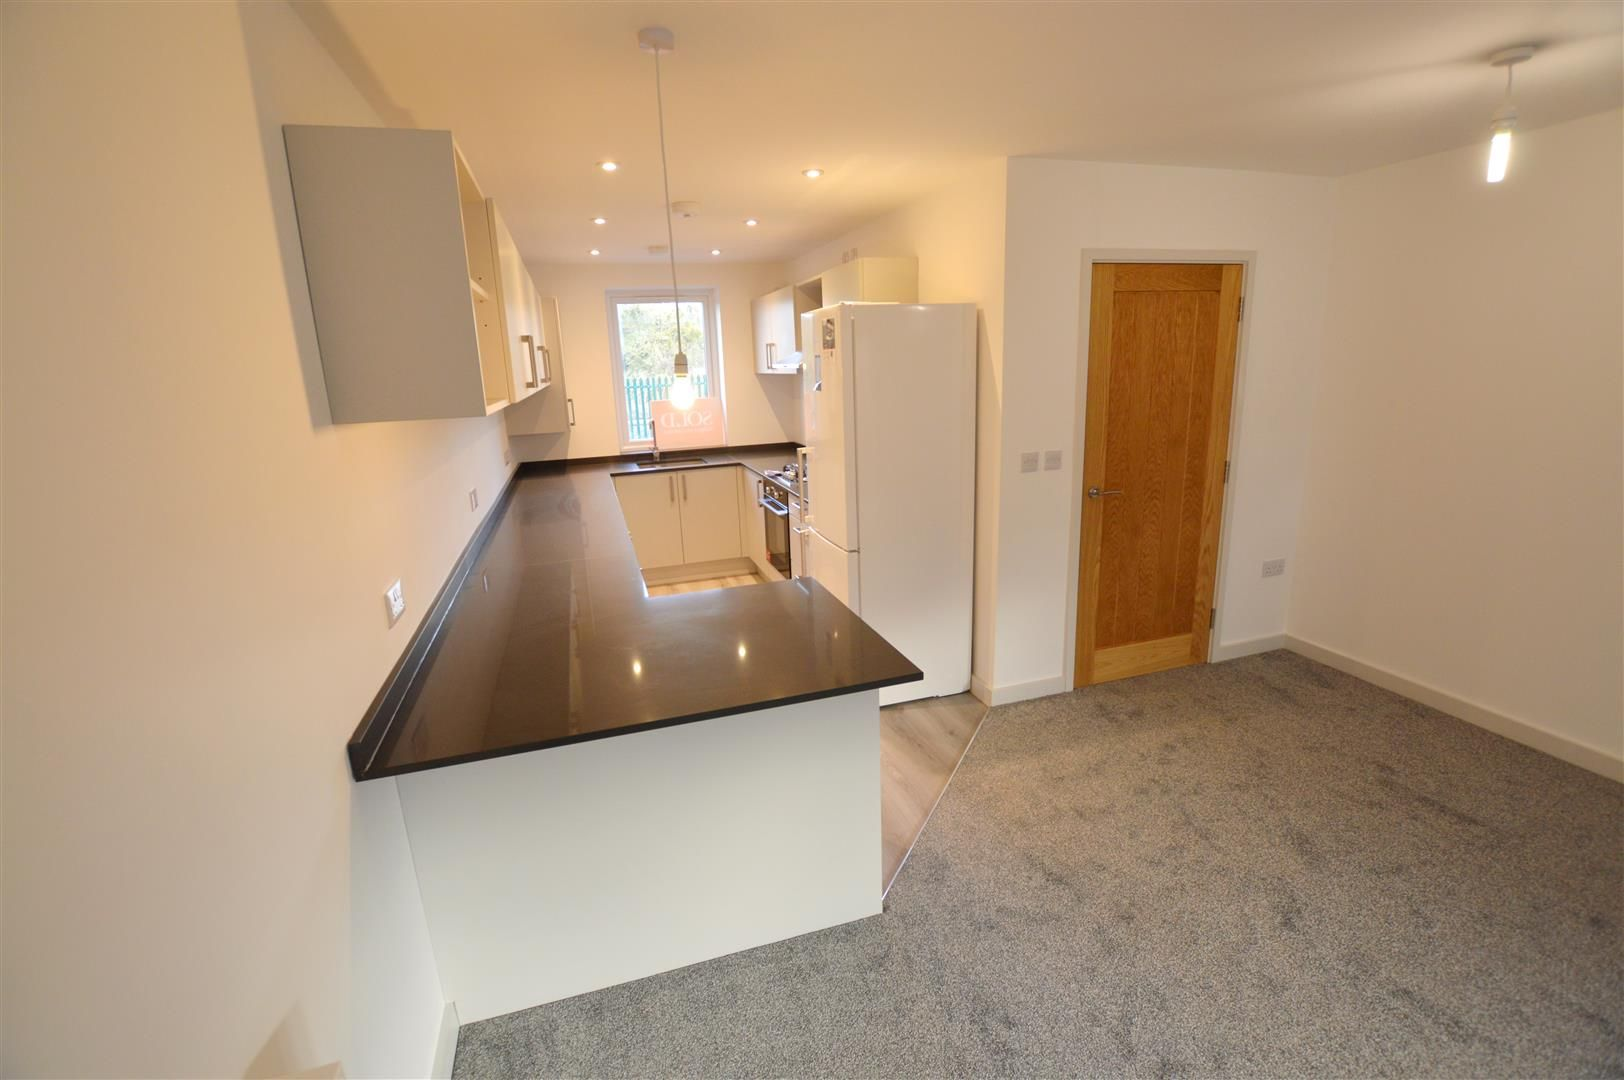 3 bed end-of-terrace for sale in Leominster 8